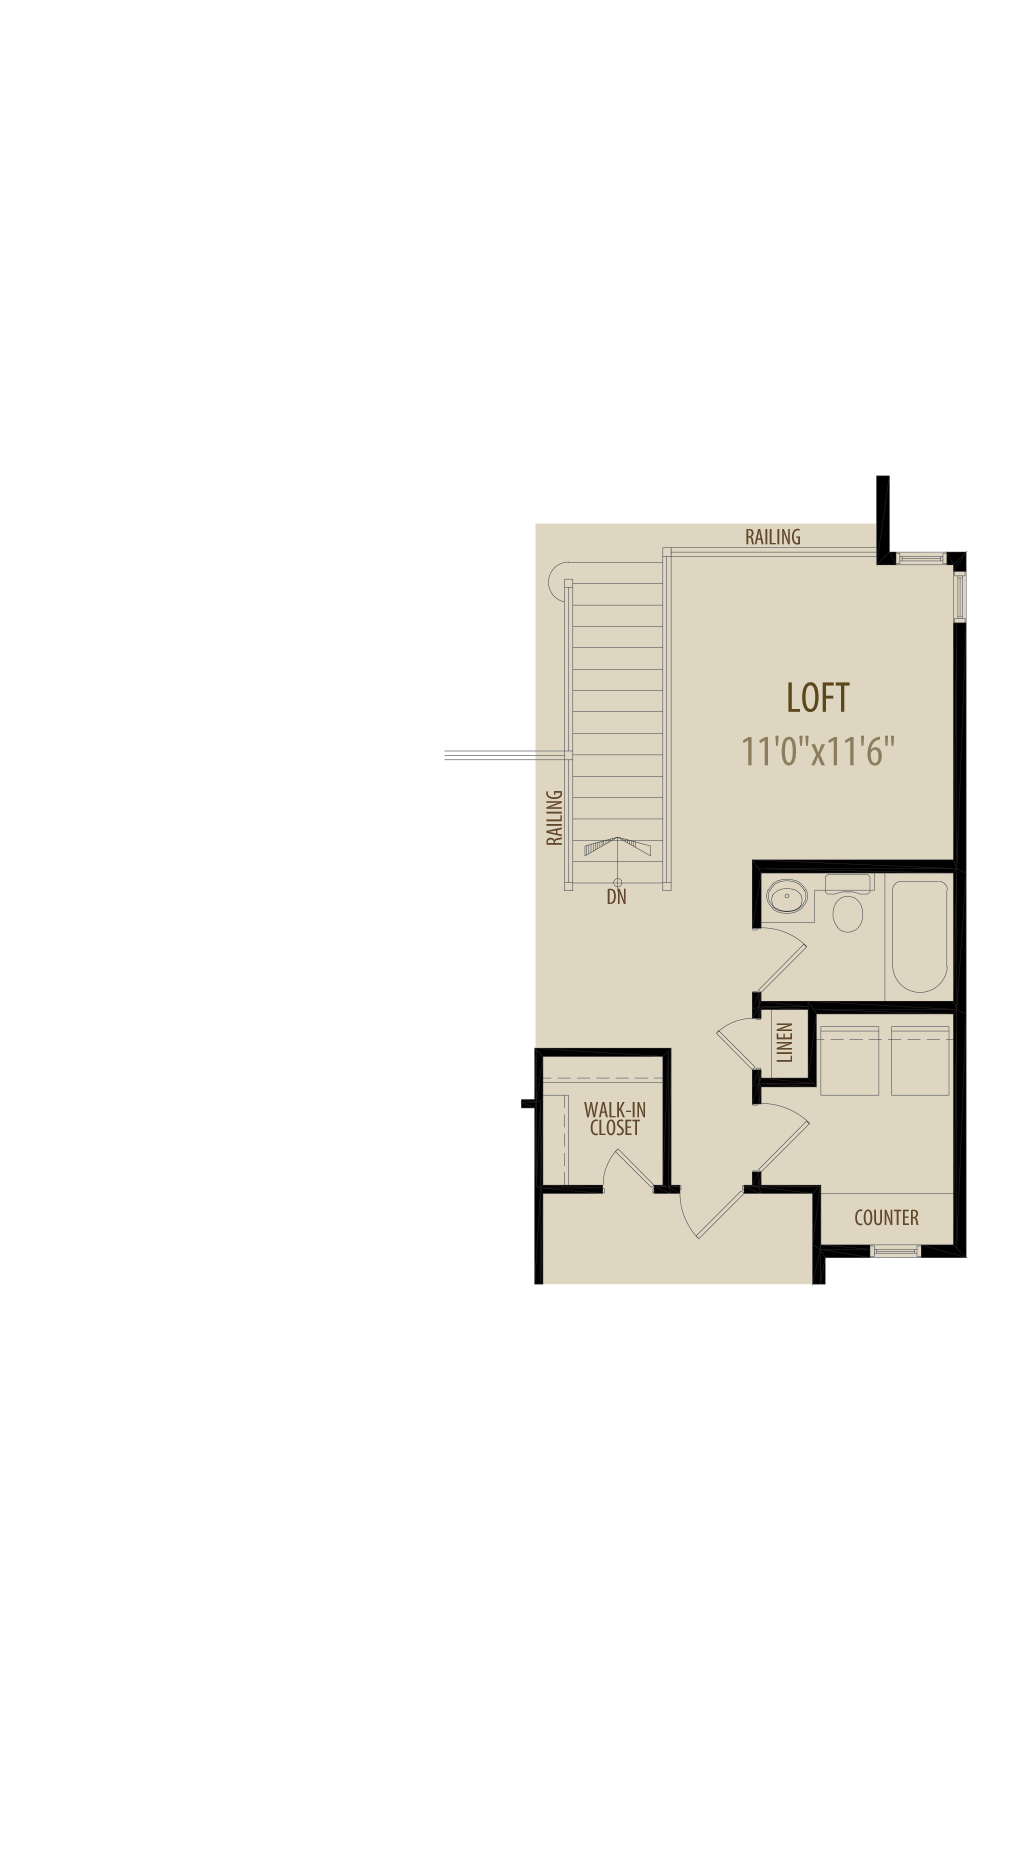 Loft Deletes 13Sq Ft